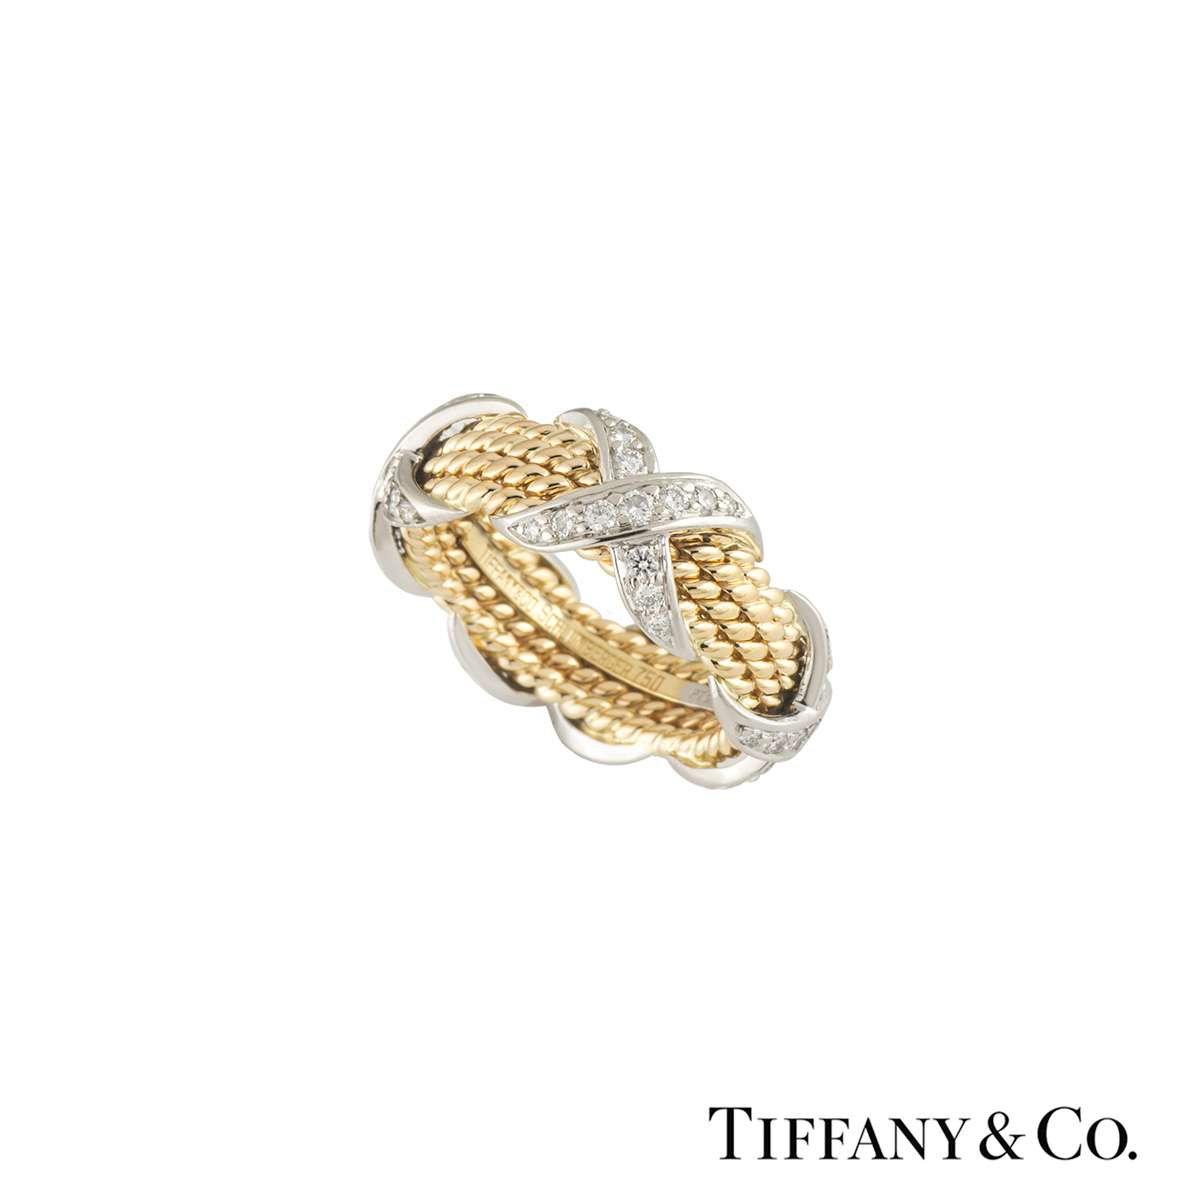 Tiffany & Co. Diamond Schlumberger Ring